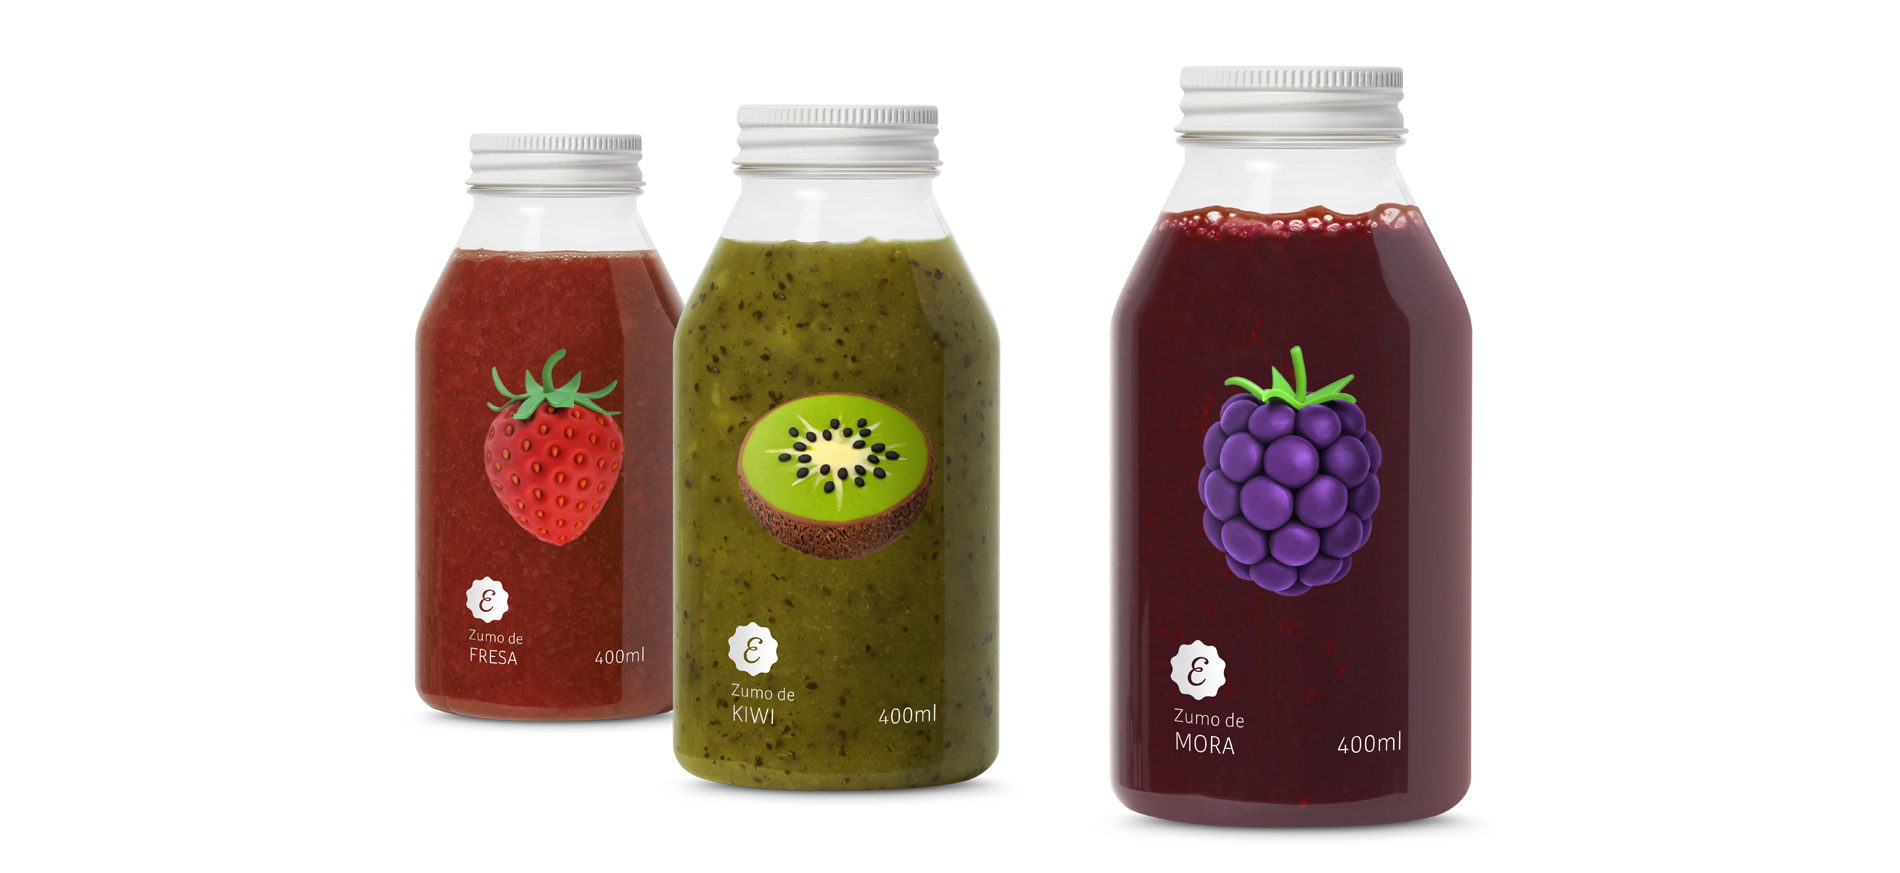 Diseño del Packaging de Smoothies de Exquisitio por Puigdemont Roca Design Agency